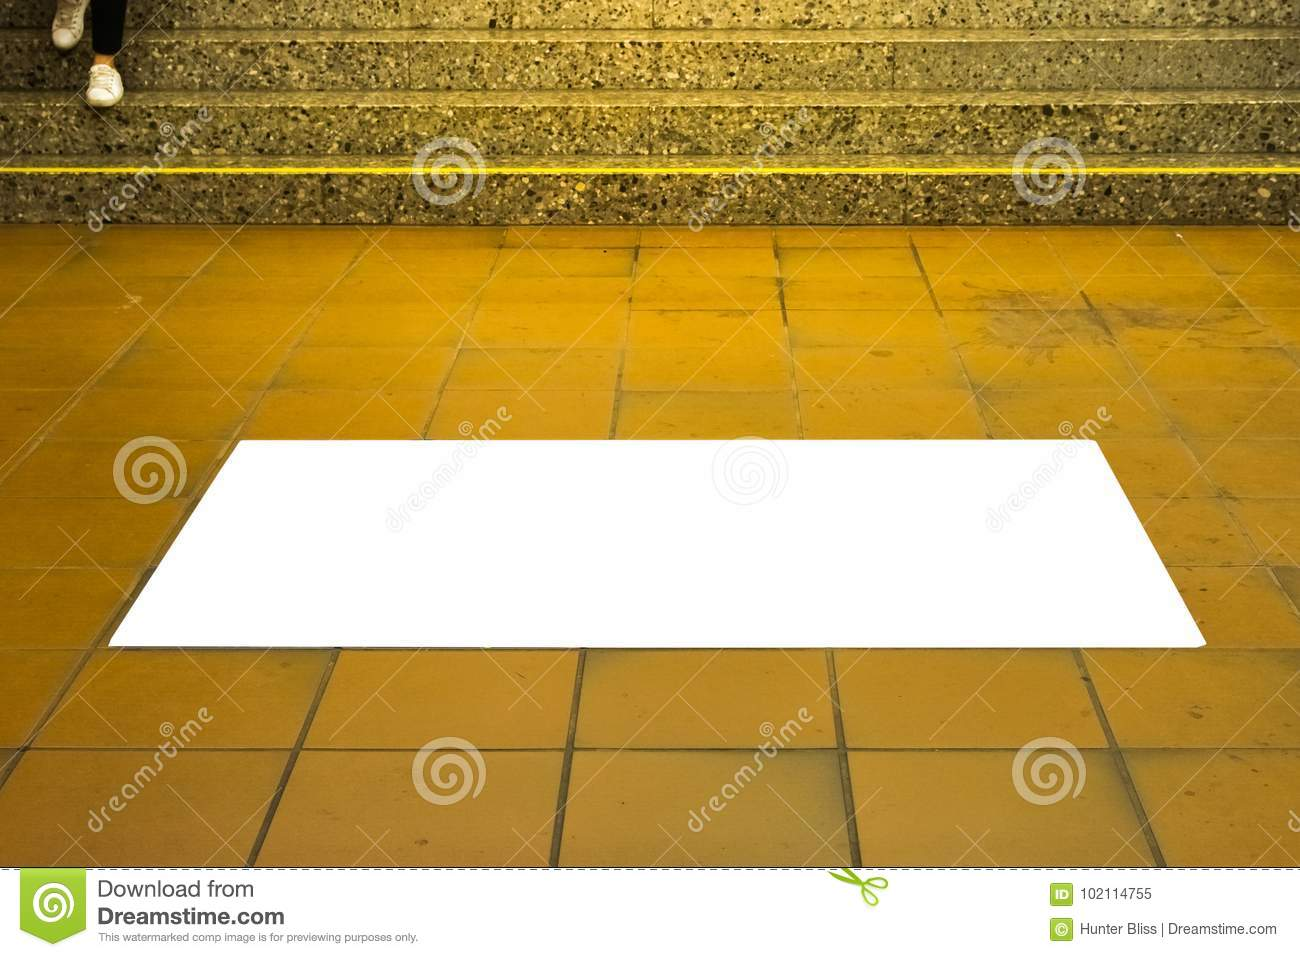 https www dreamstime com subway tile floor ad space white isolated mockup urban area advertisement poster subway tile floor ad space white isolated mockup image102114755